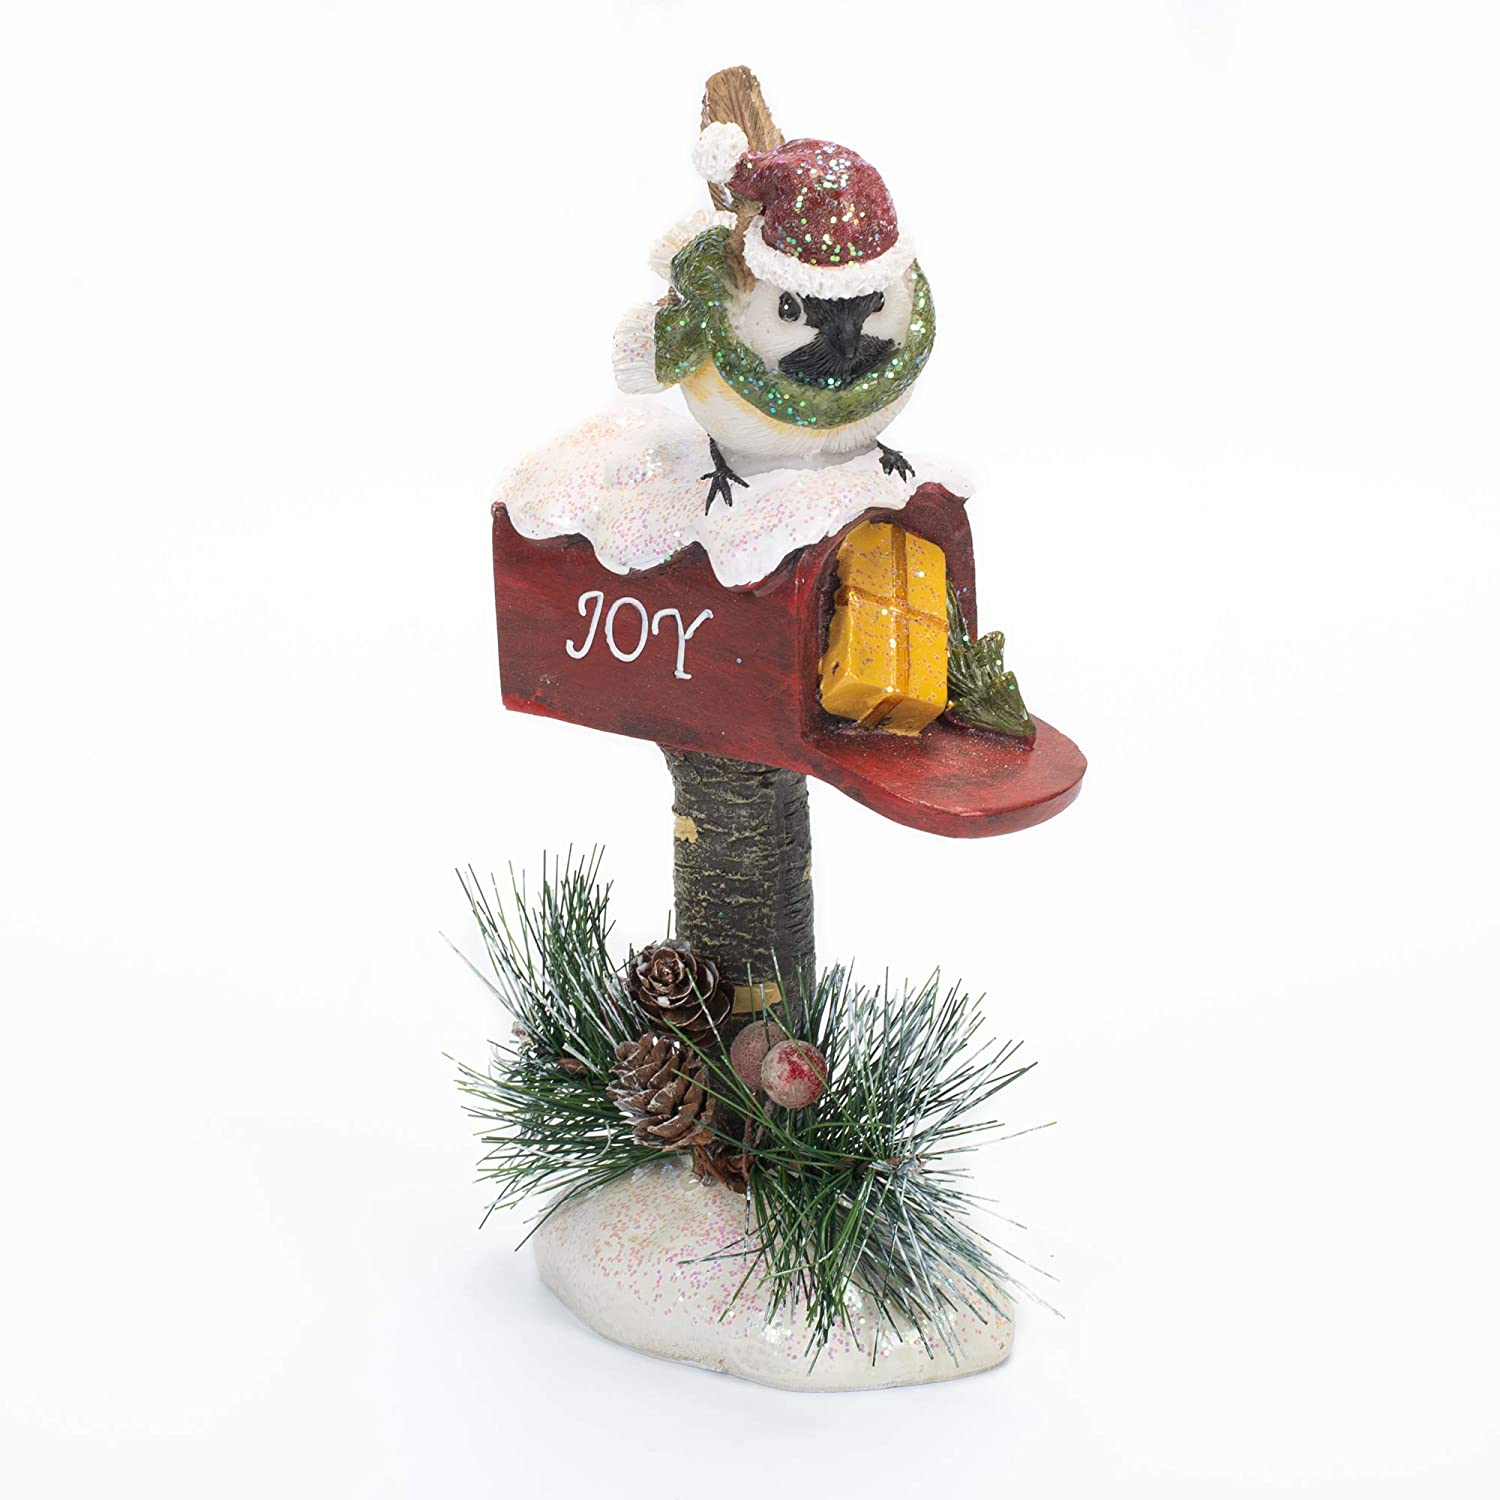 Delton Products Resin Pine Bird Mailbox 4.5 Inches x 9.3 Inches Home Decor